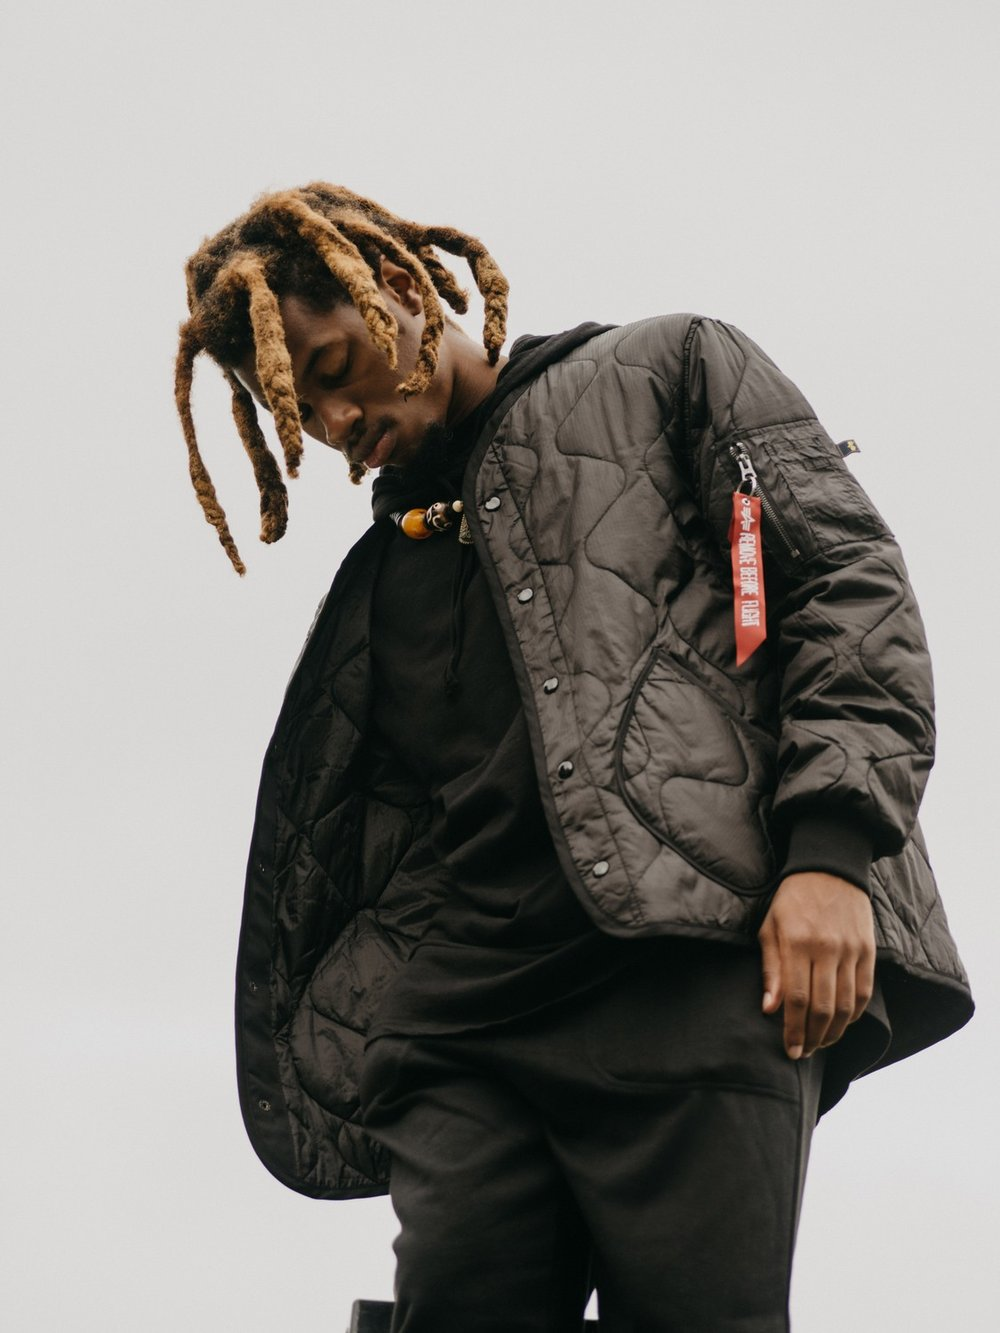 alpha-industries-urban-outfitters-denzel-curry-3.jpg